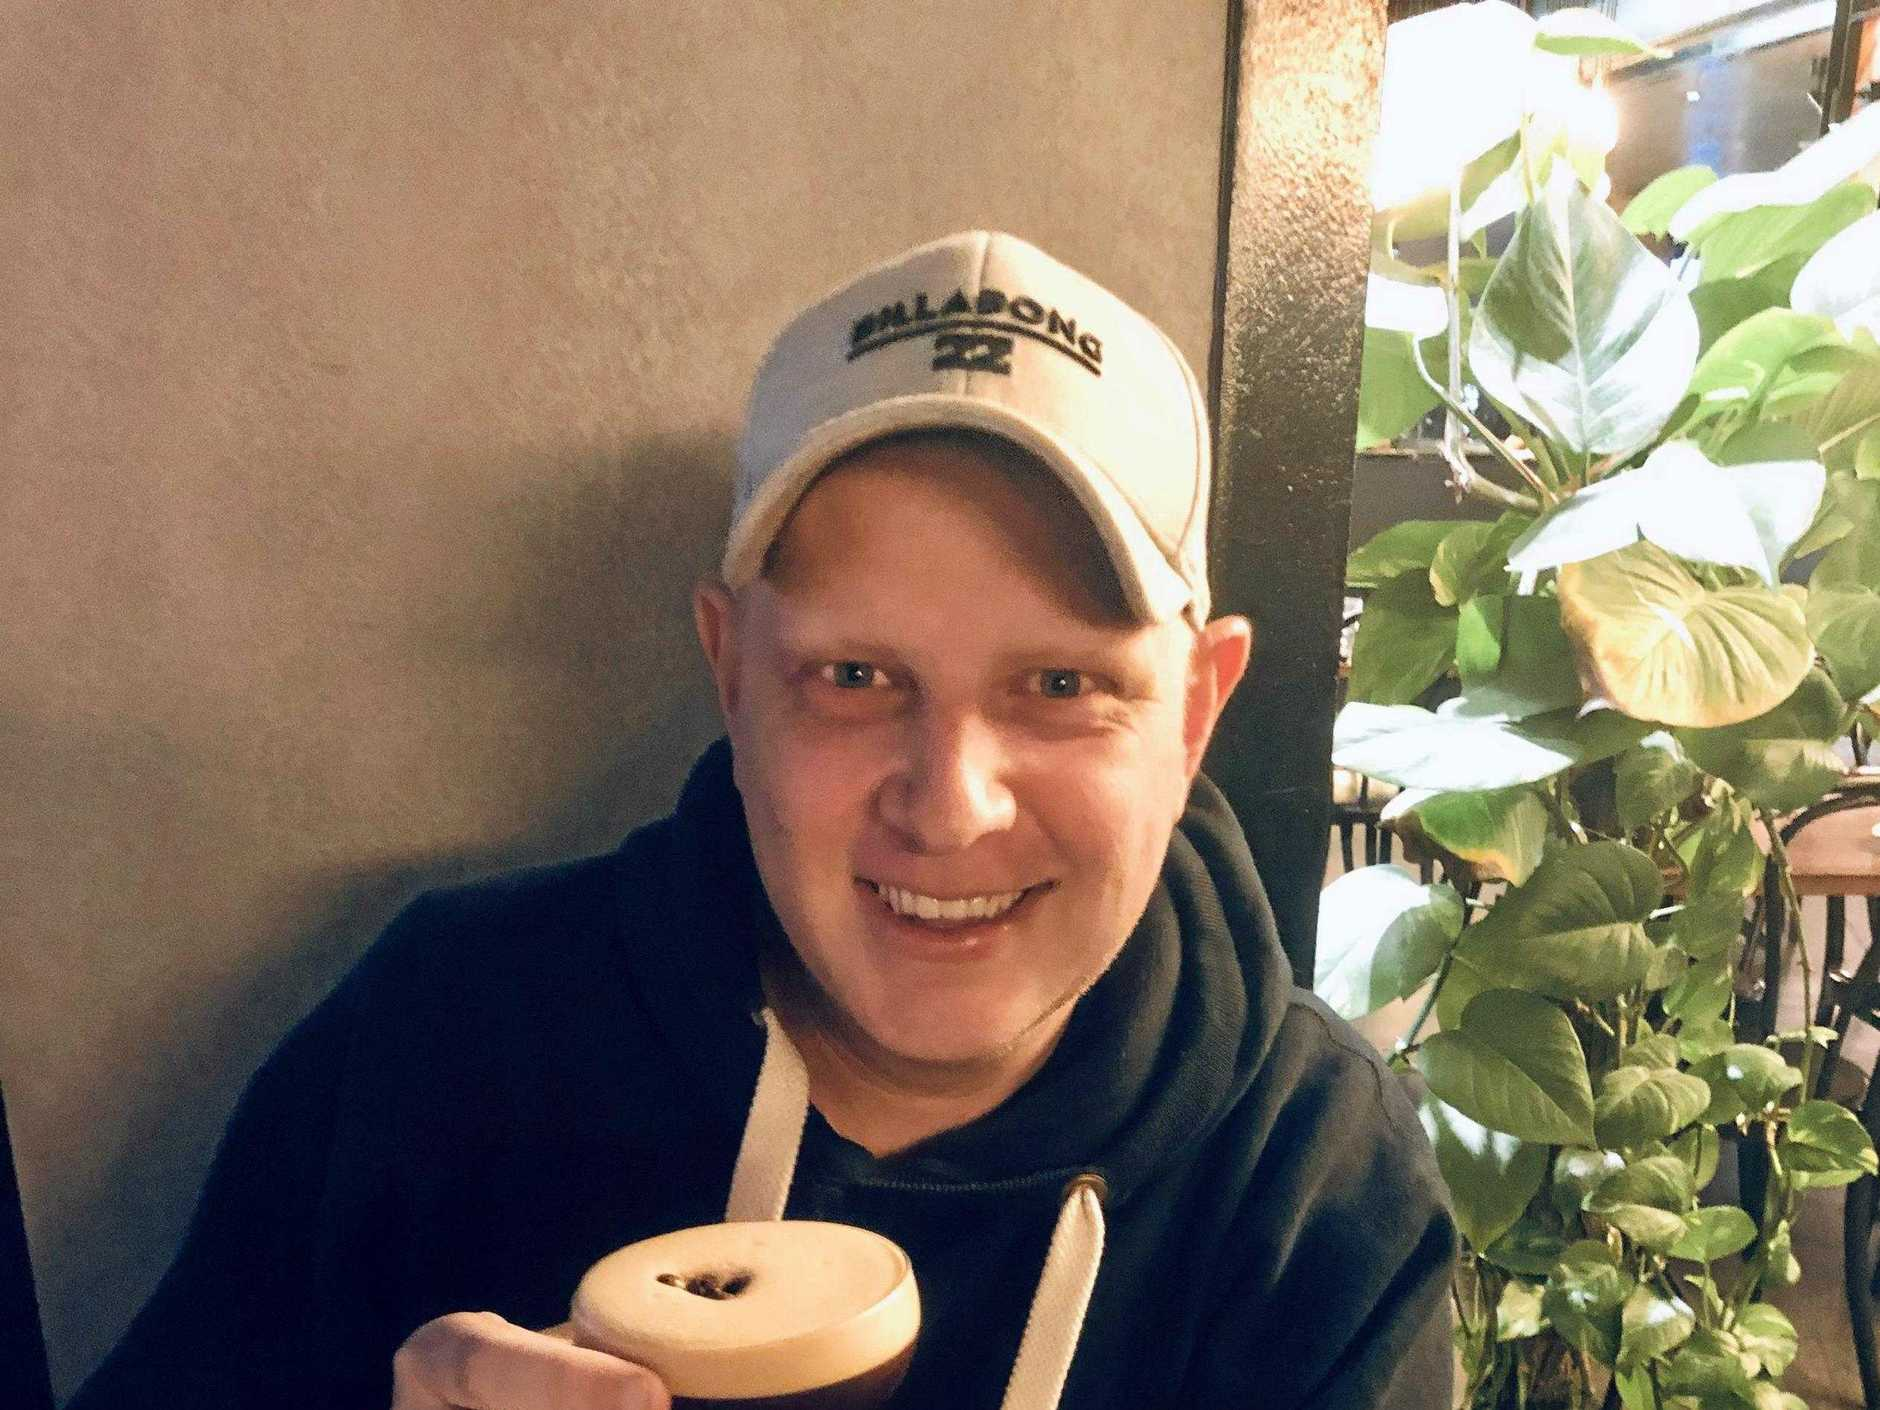 Taken in May this year, Nate celebrates the end of a brutal 10 months of chemotherapy in true style - with an espresso martini.